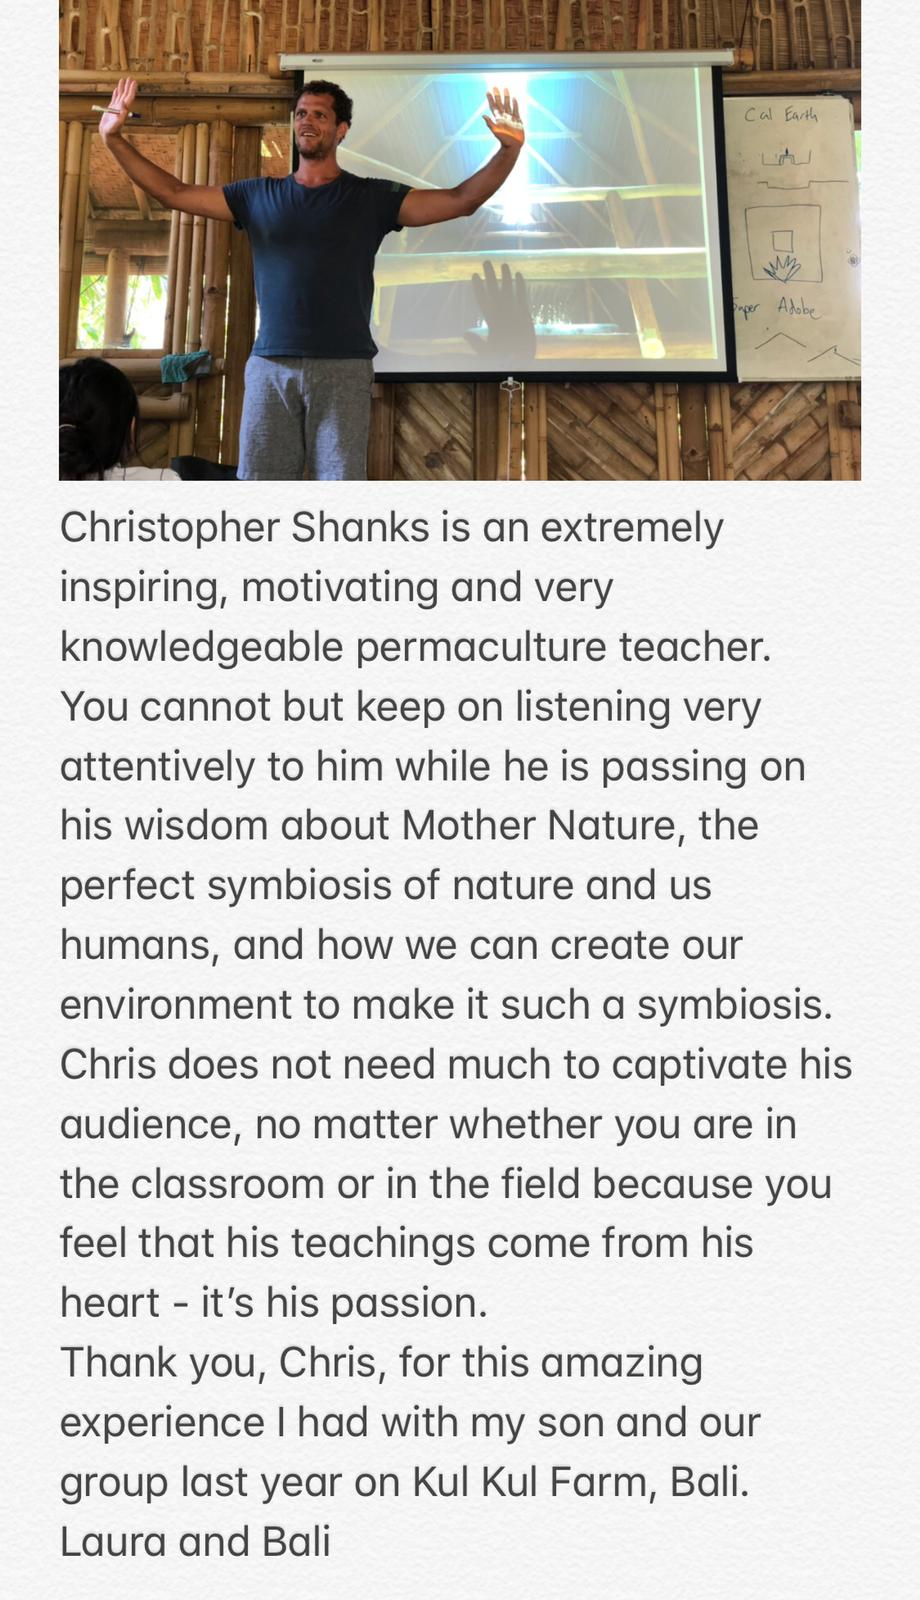 Chris Shanks Permaculture Design Course Instructor Testimonial